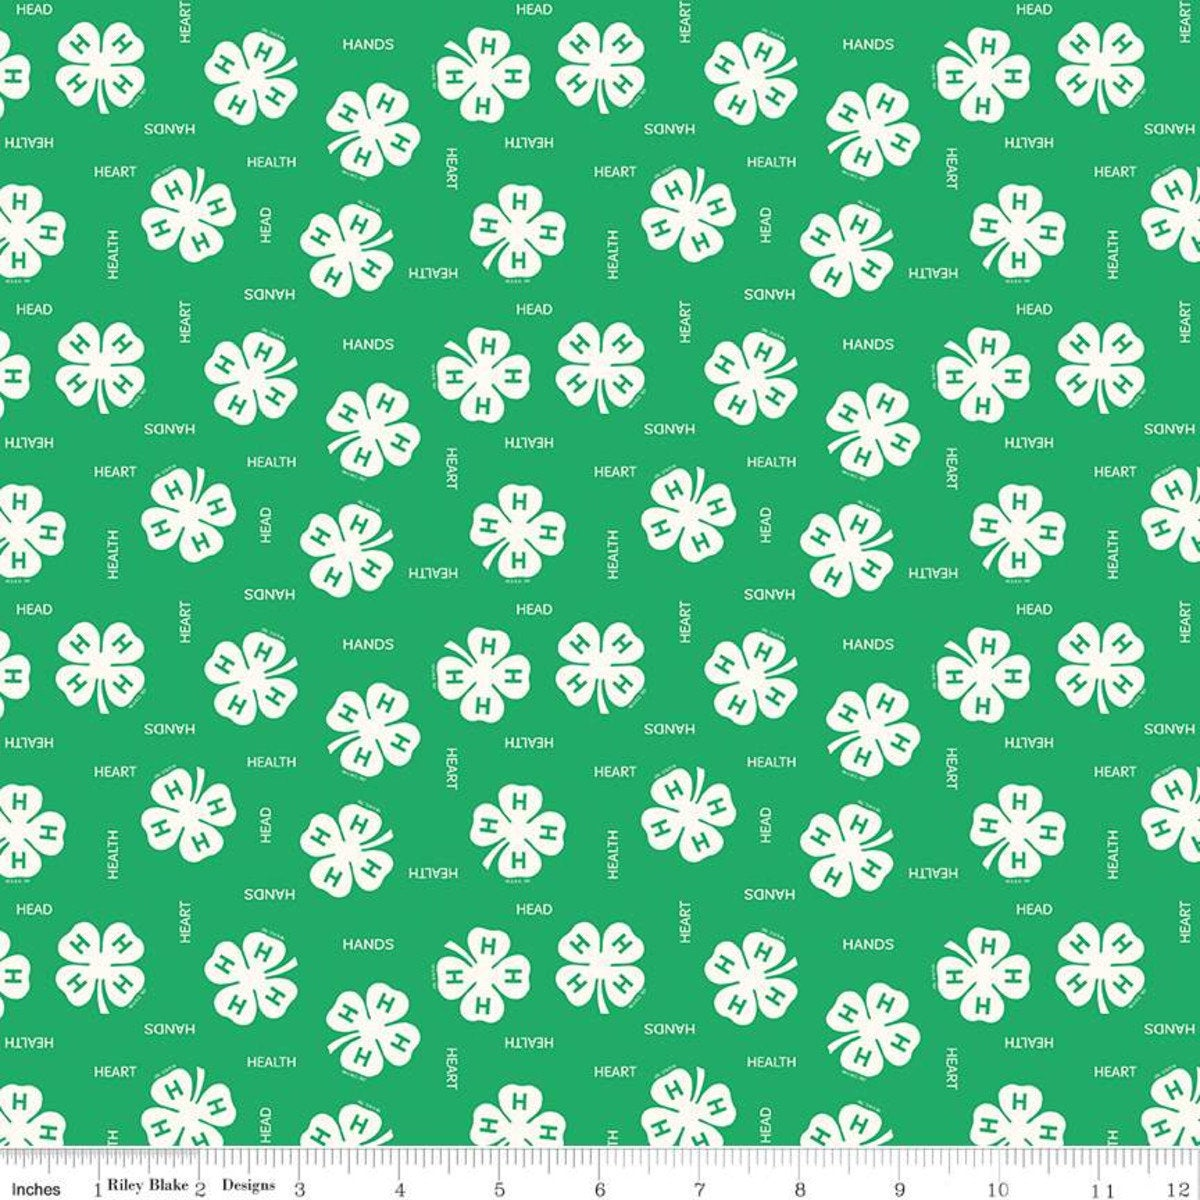 4-H Clover Fabric By Riley Blake C9121 Green